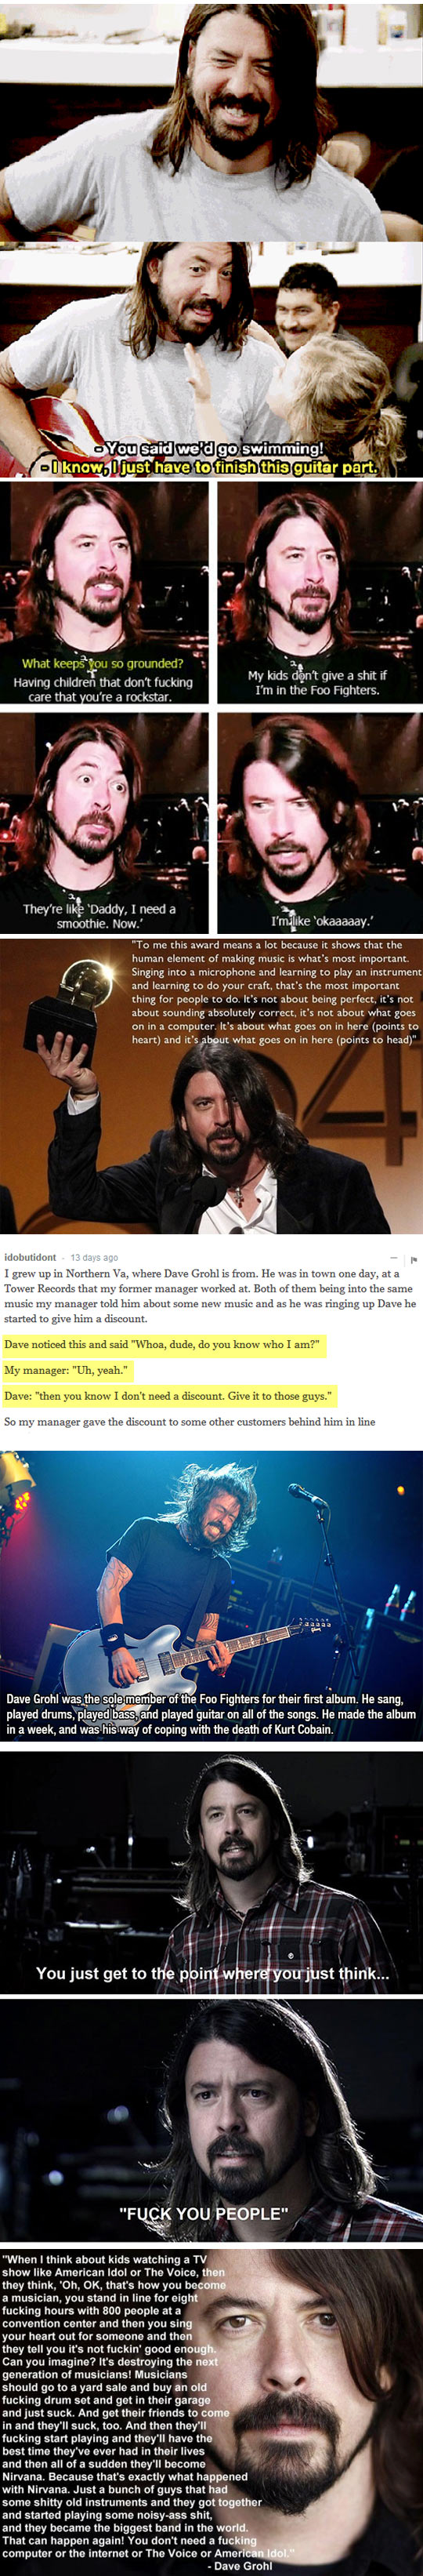 cool-Dave-Grohl-awesome-person-quote